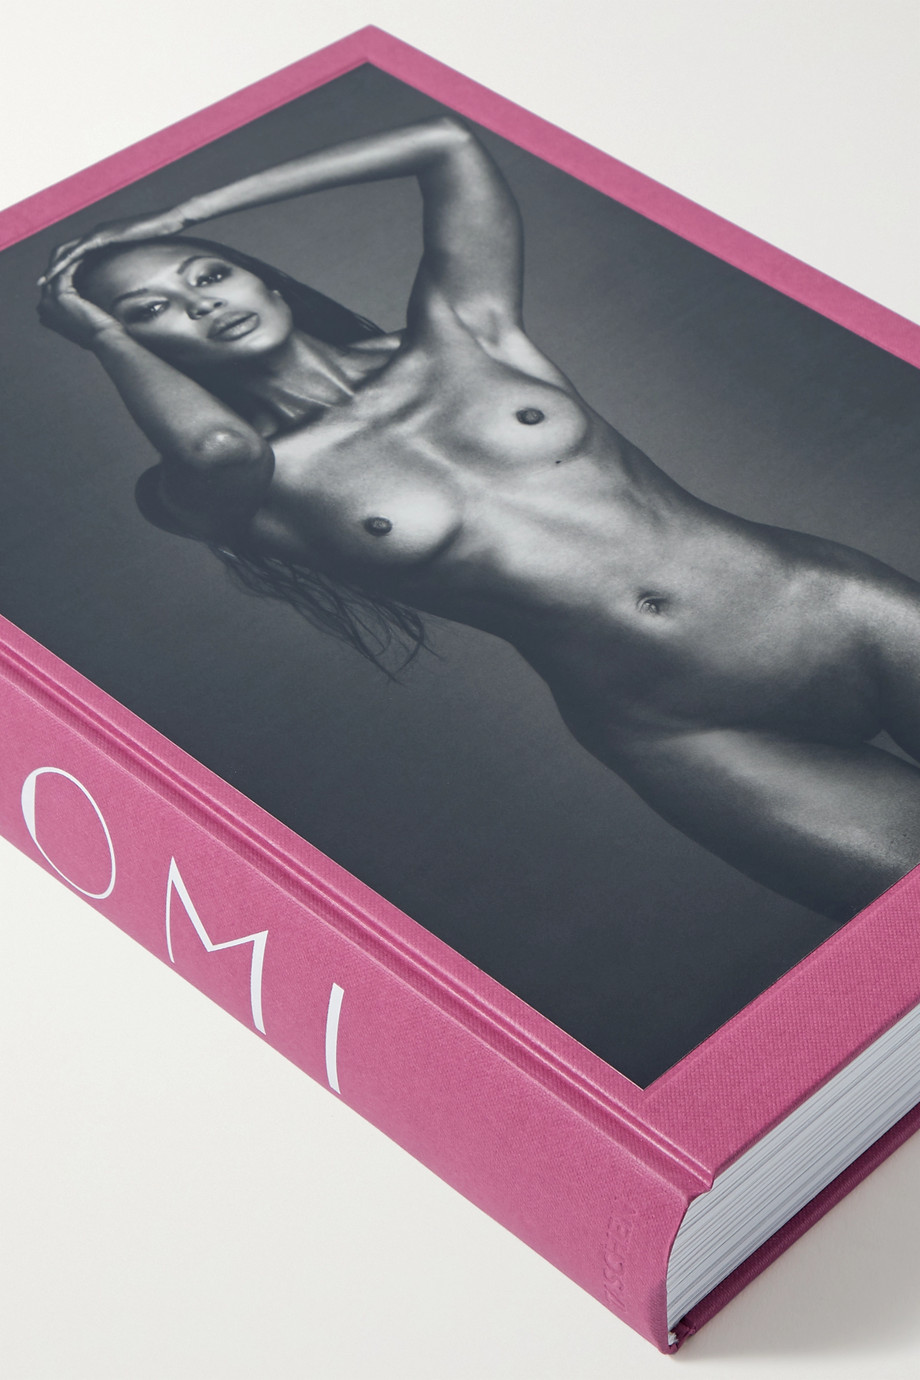 TASCHEN Naomi, Updated Edition, set of two hardcover books